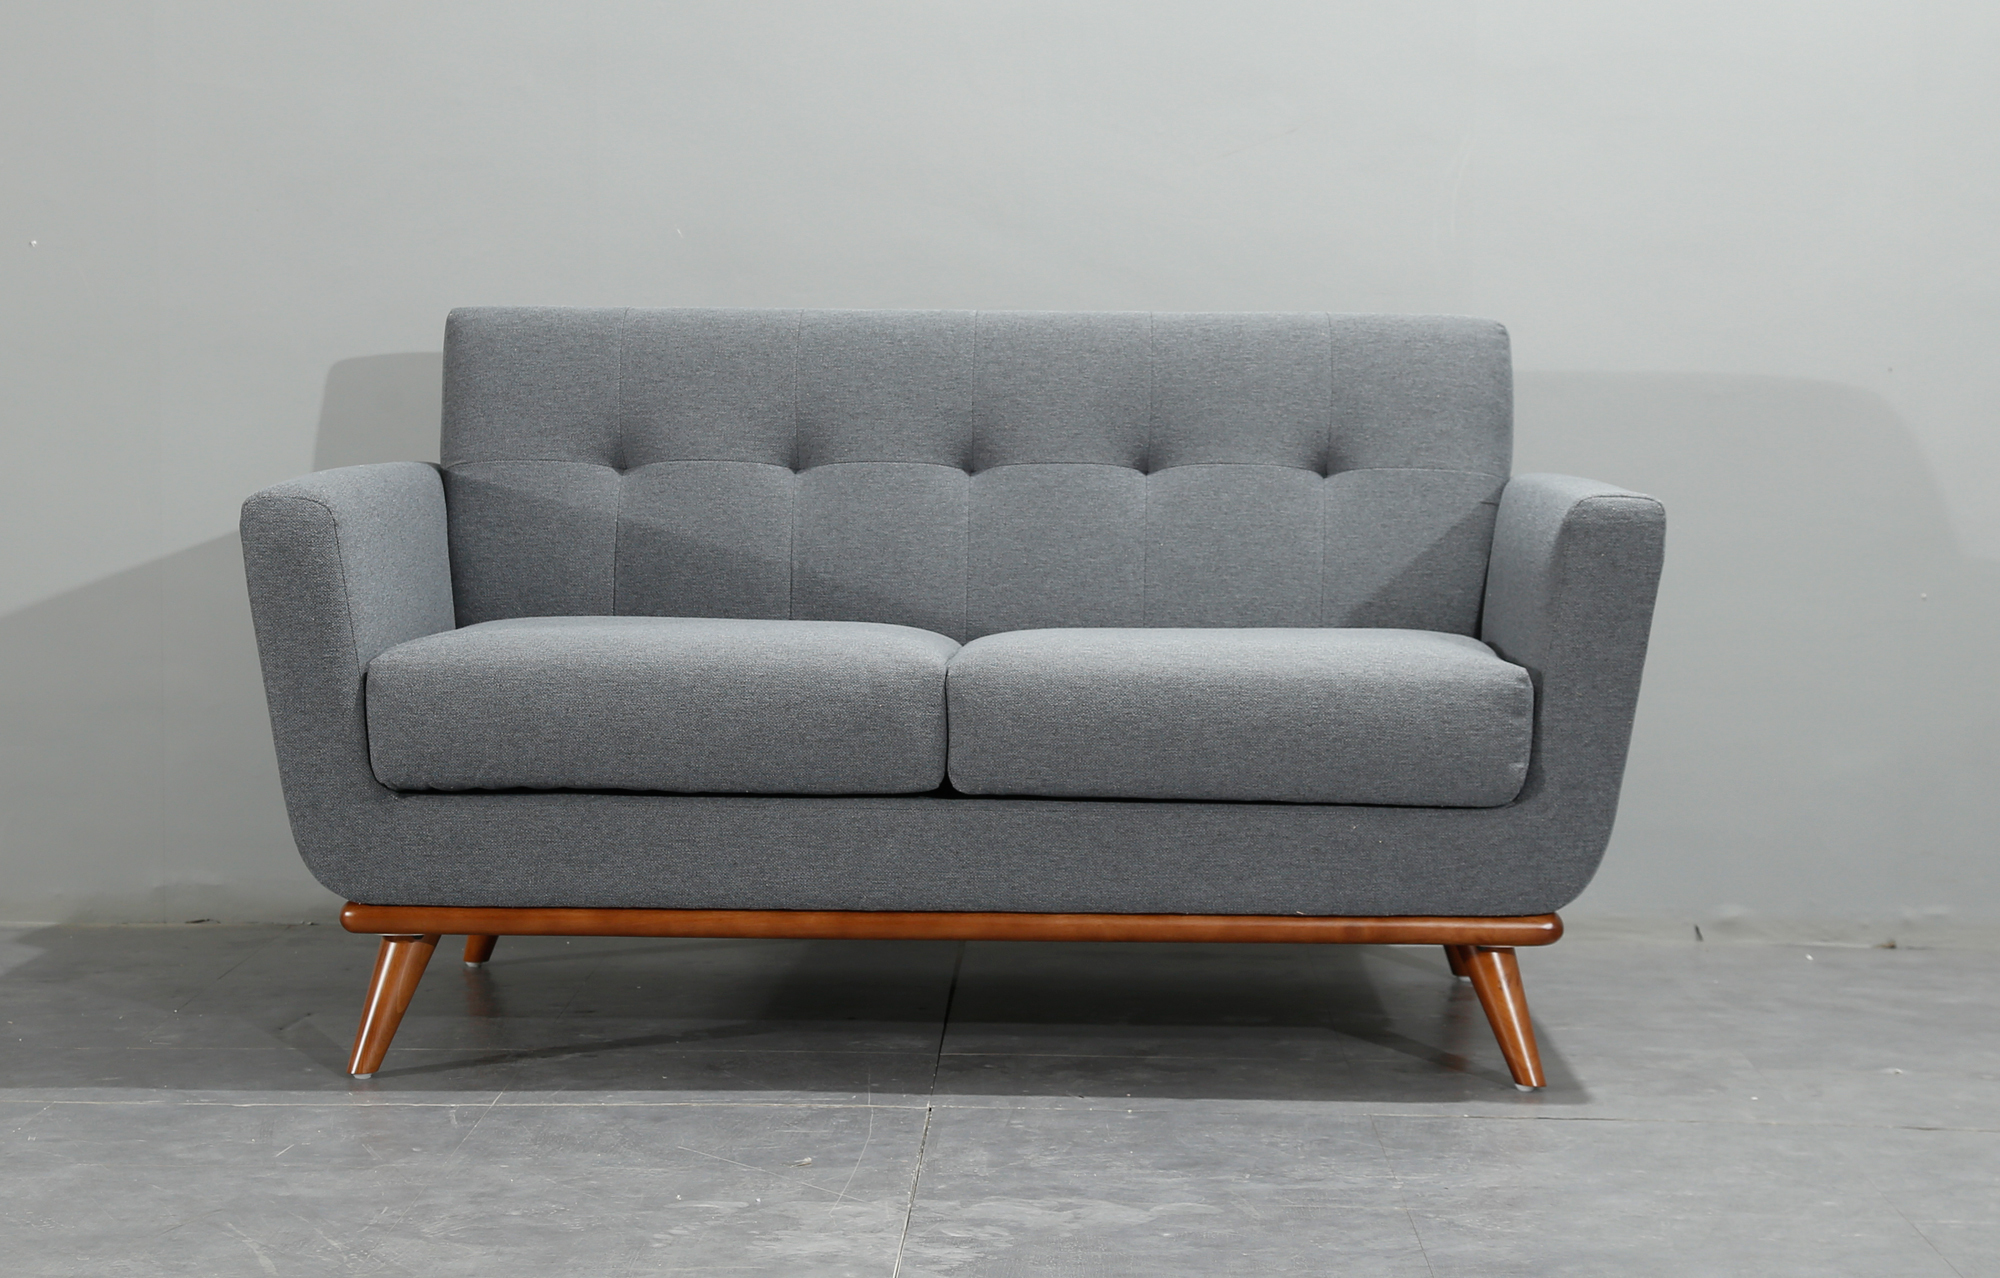 New Design Scandinavian Style Charcoal Grey 2 Seater Sofa Premium Quality Free Uk Delivery